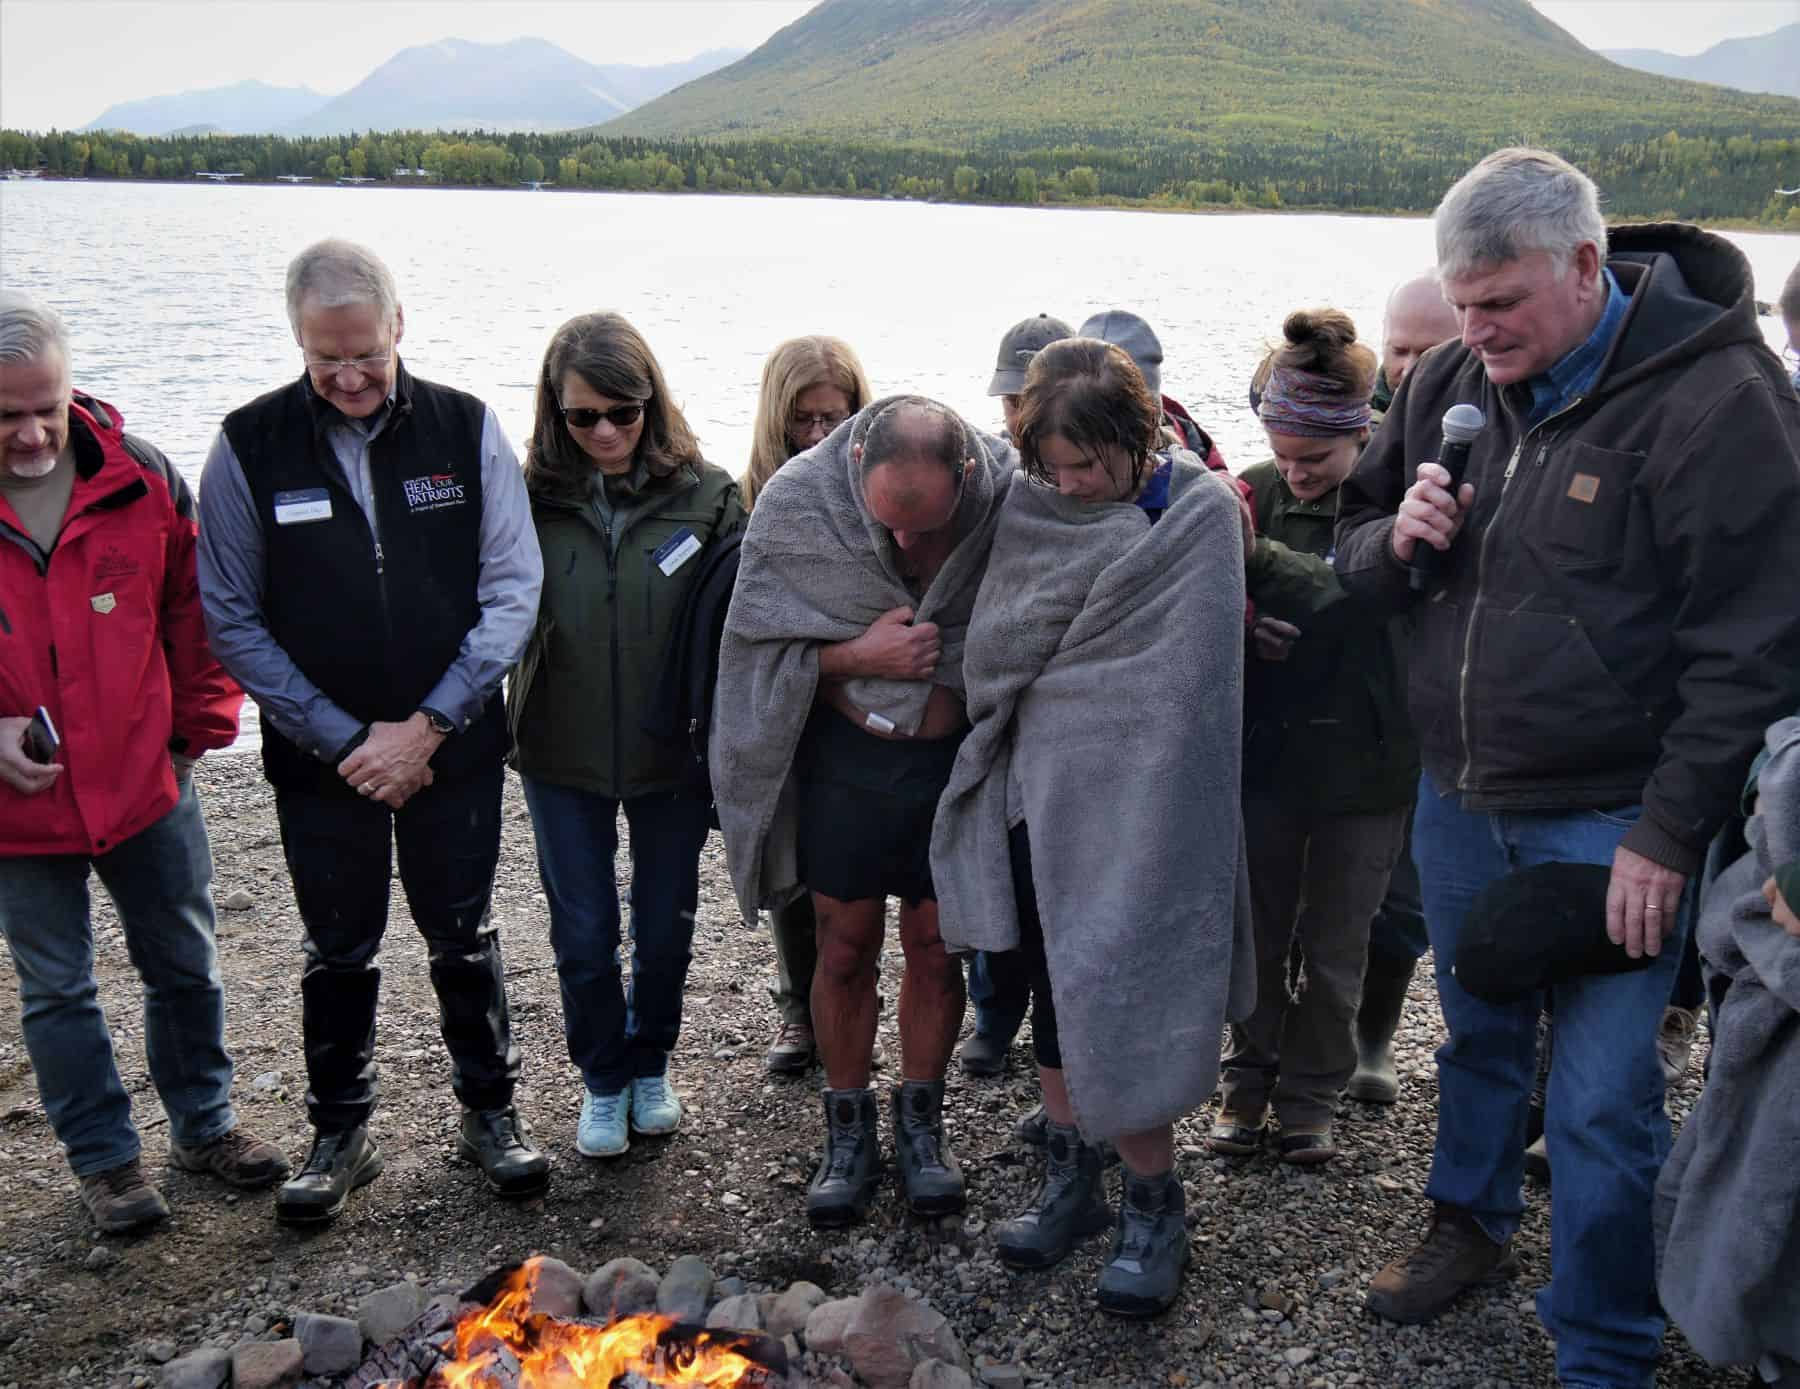 After six people were baptized in the chilly waters of Lake Clark, Samaritan's Purse international president Franklin Graham prayed with them to encourage them in their new faith.